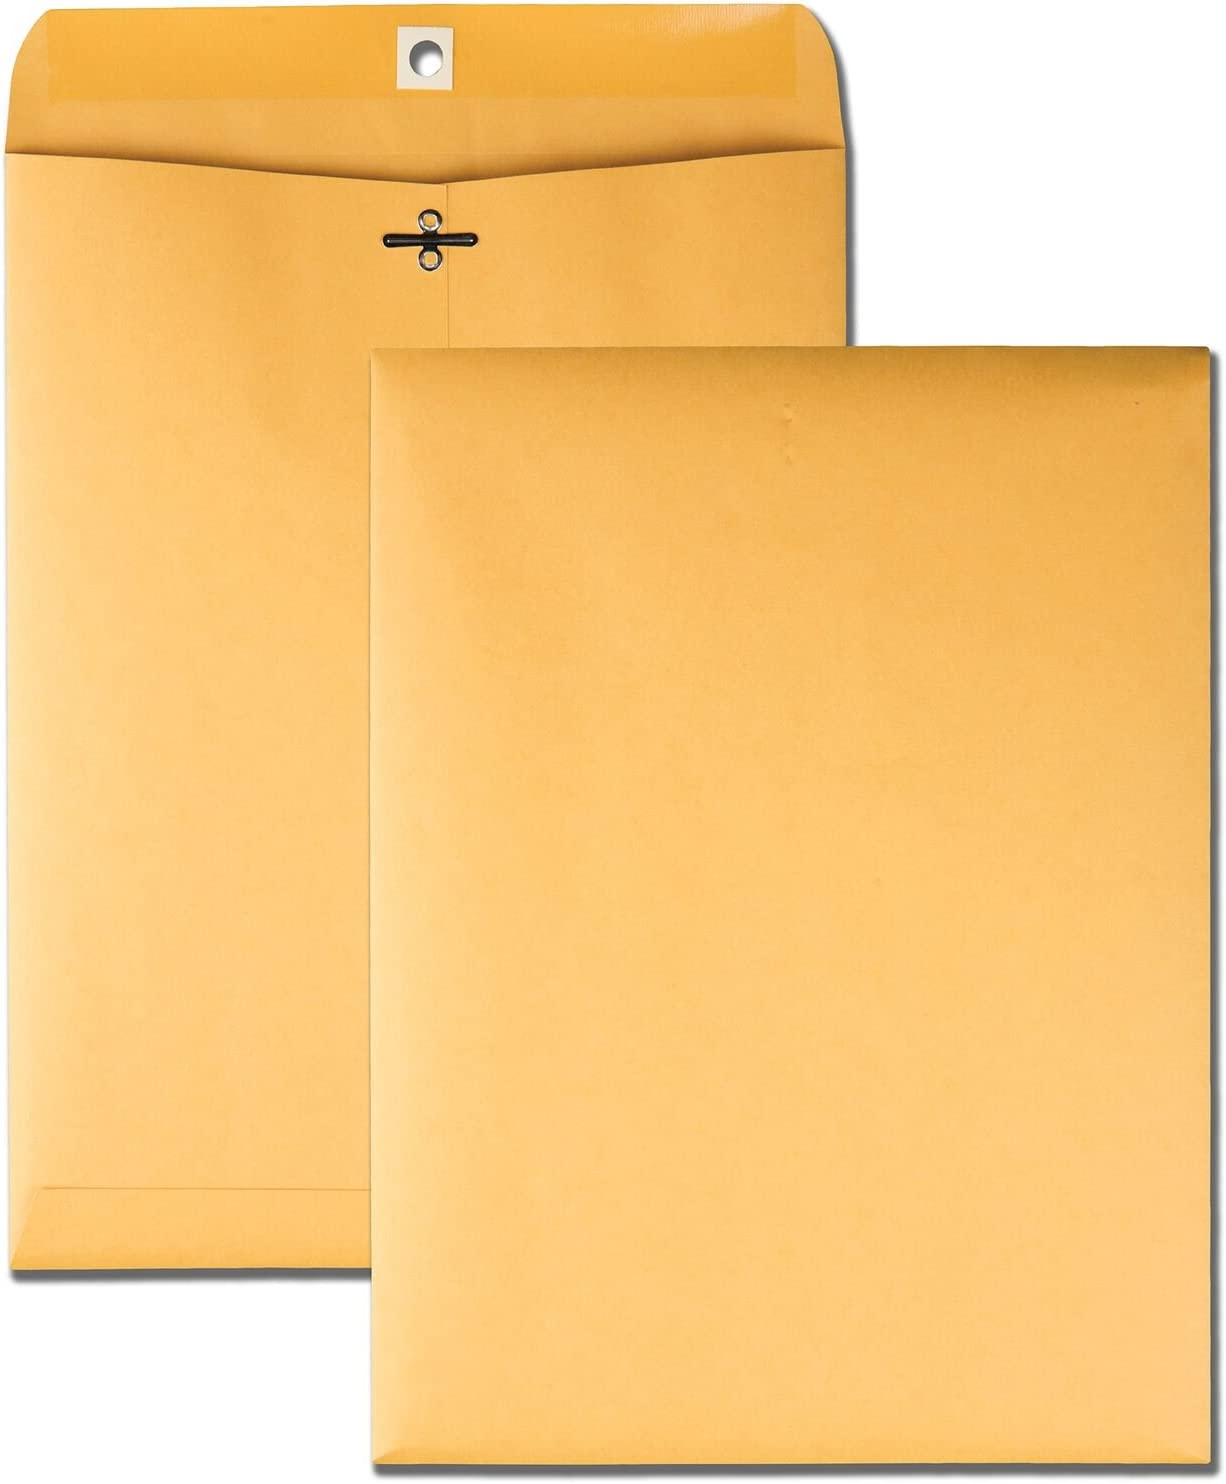 Quality Park 9 x 12 Clasp Envelopes with Deeply Gummed Flaps, Great for Filing, Storing or Mailing Documents, 28 lb Brown Kraft, 250 per Box (37590) : Office Products